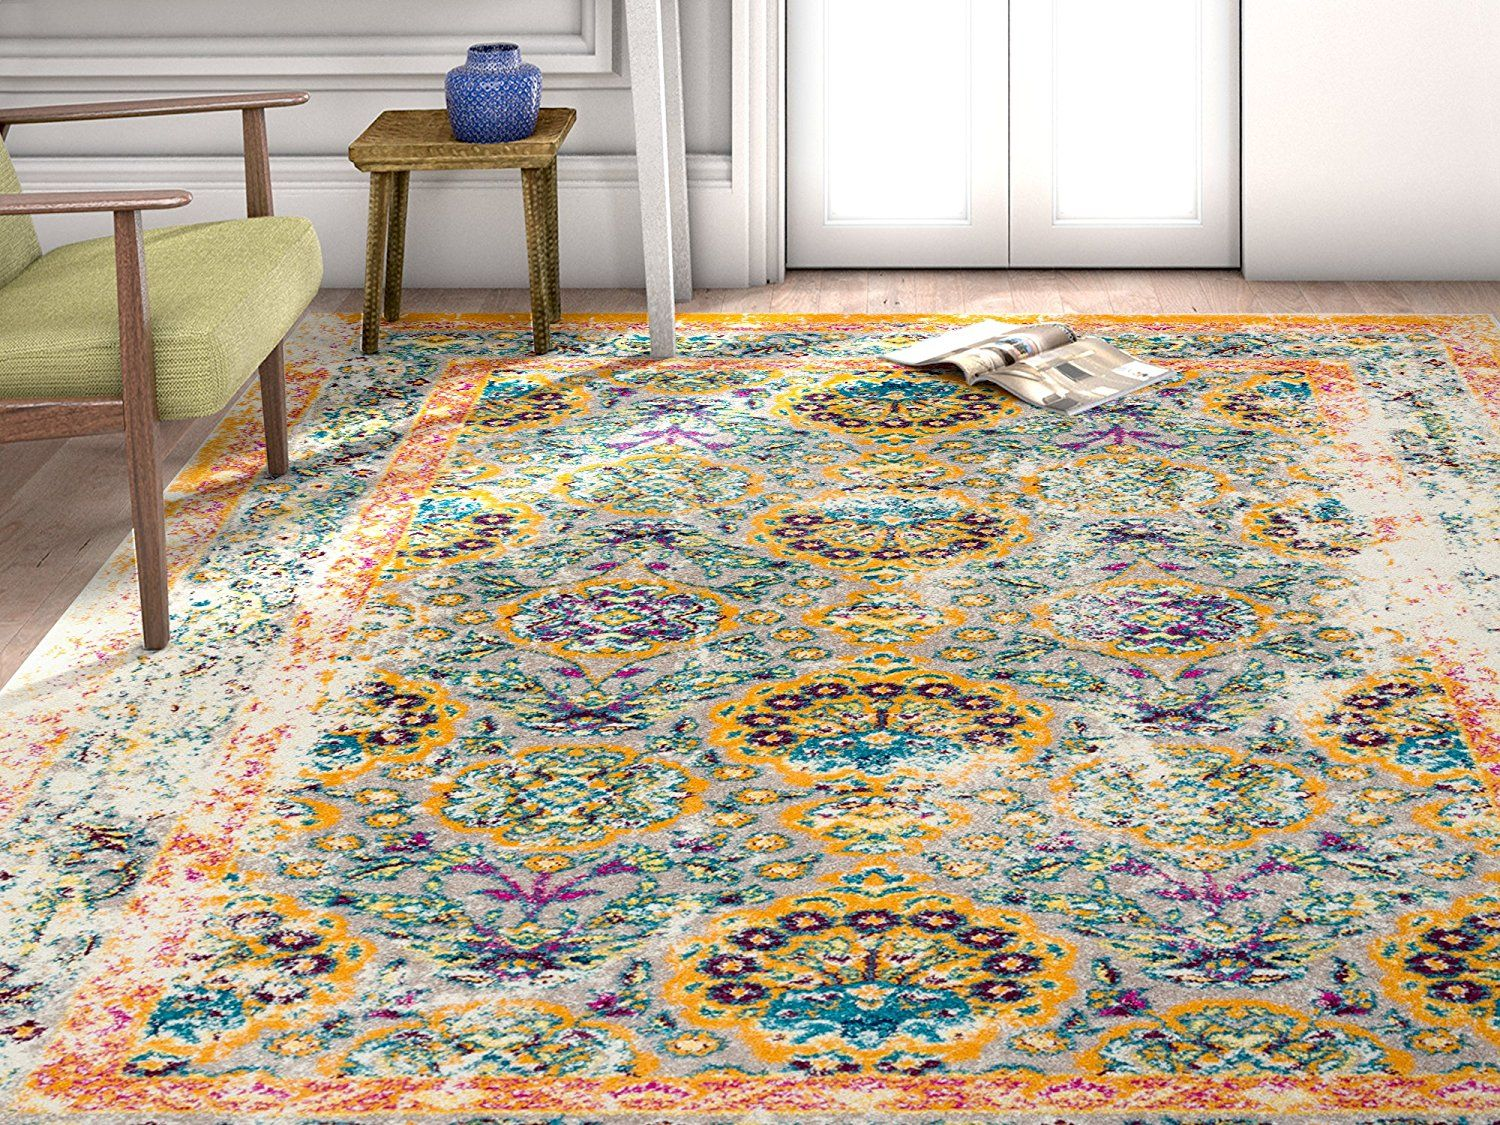 Well Woven Modern Weave Carpet Bright Colored Area Rug Distressed Vintage Persian Floral Orange Beige Blue Home D Well Woven Area Rugs Rugs